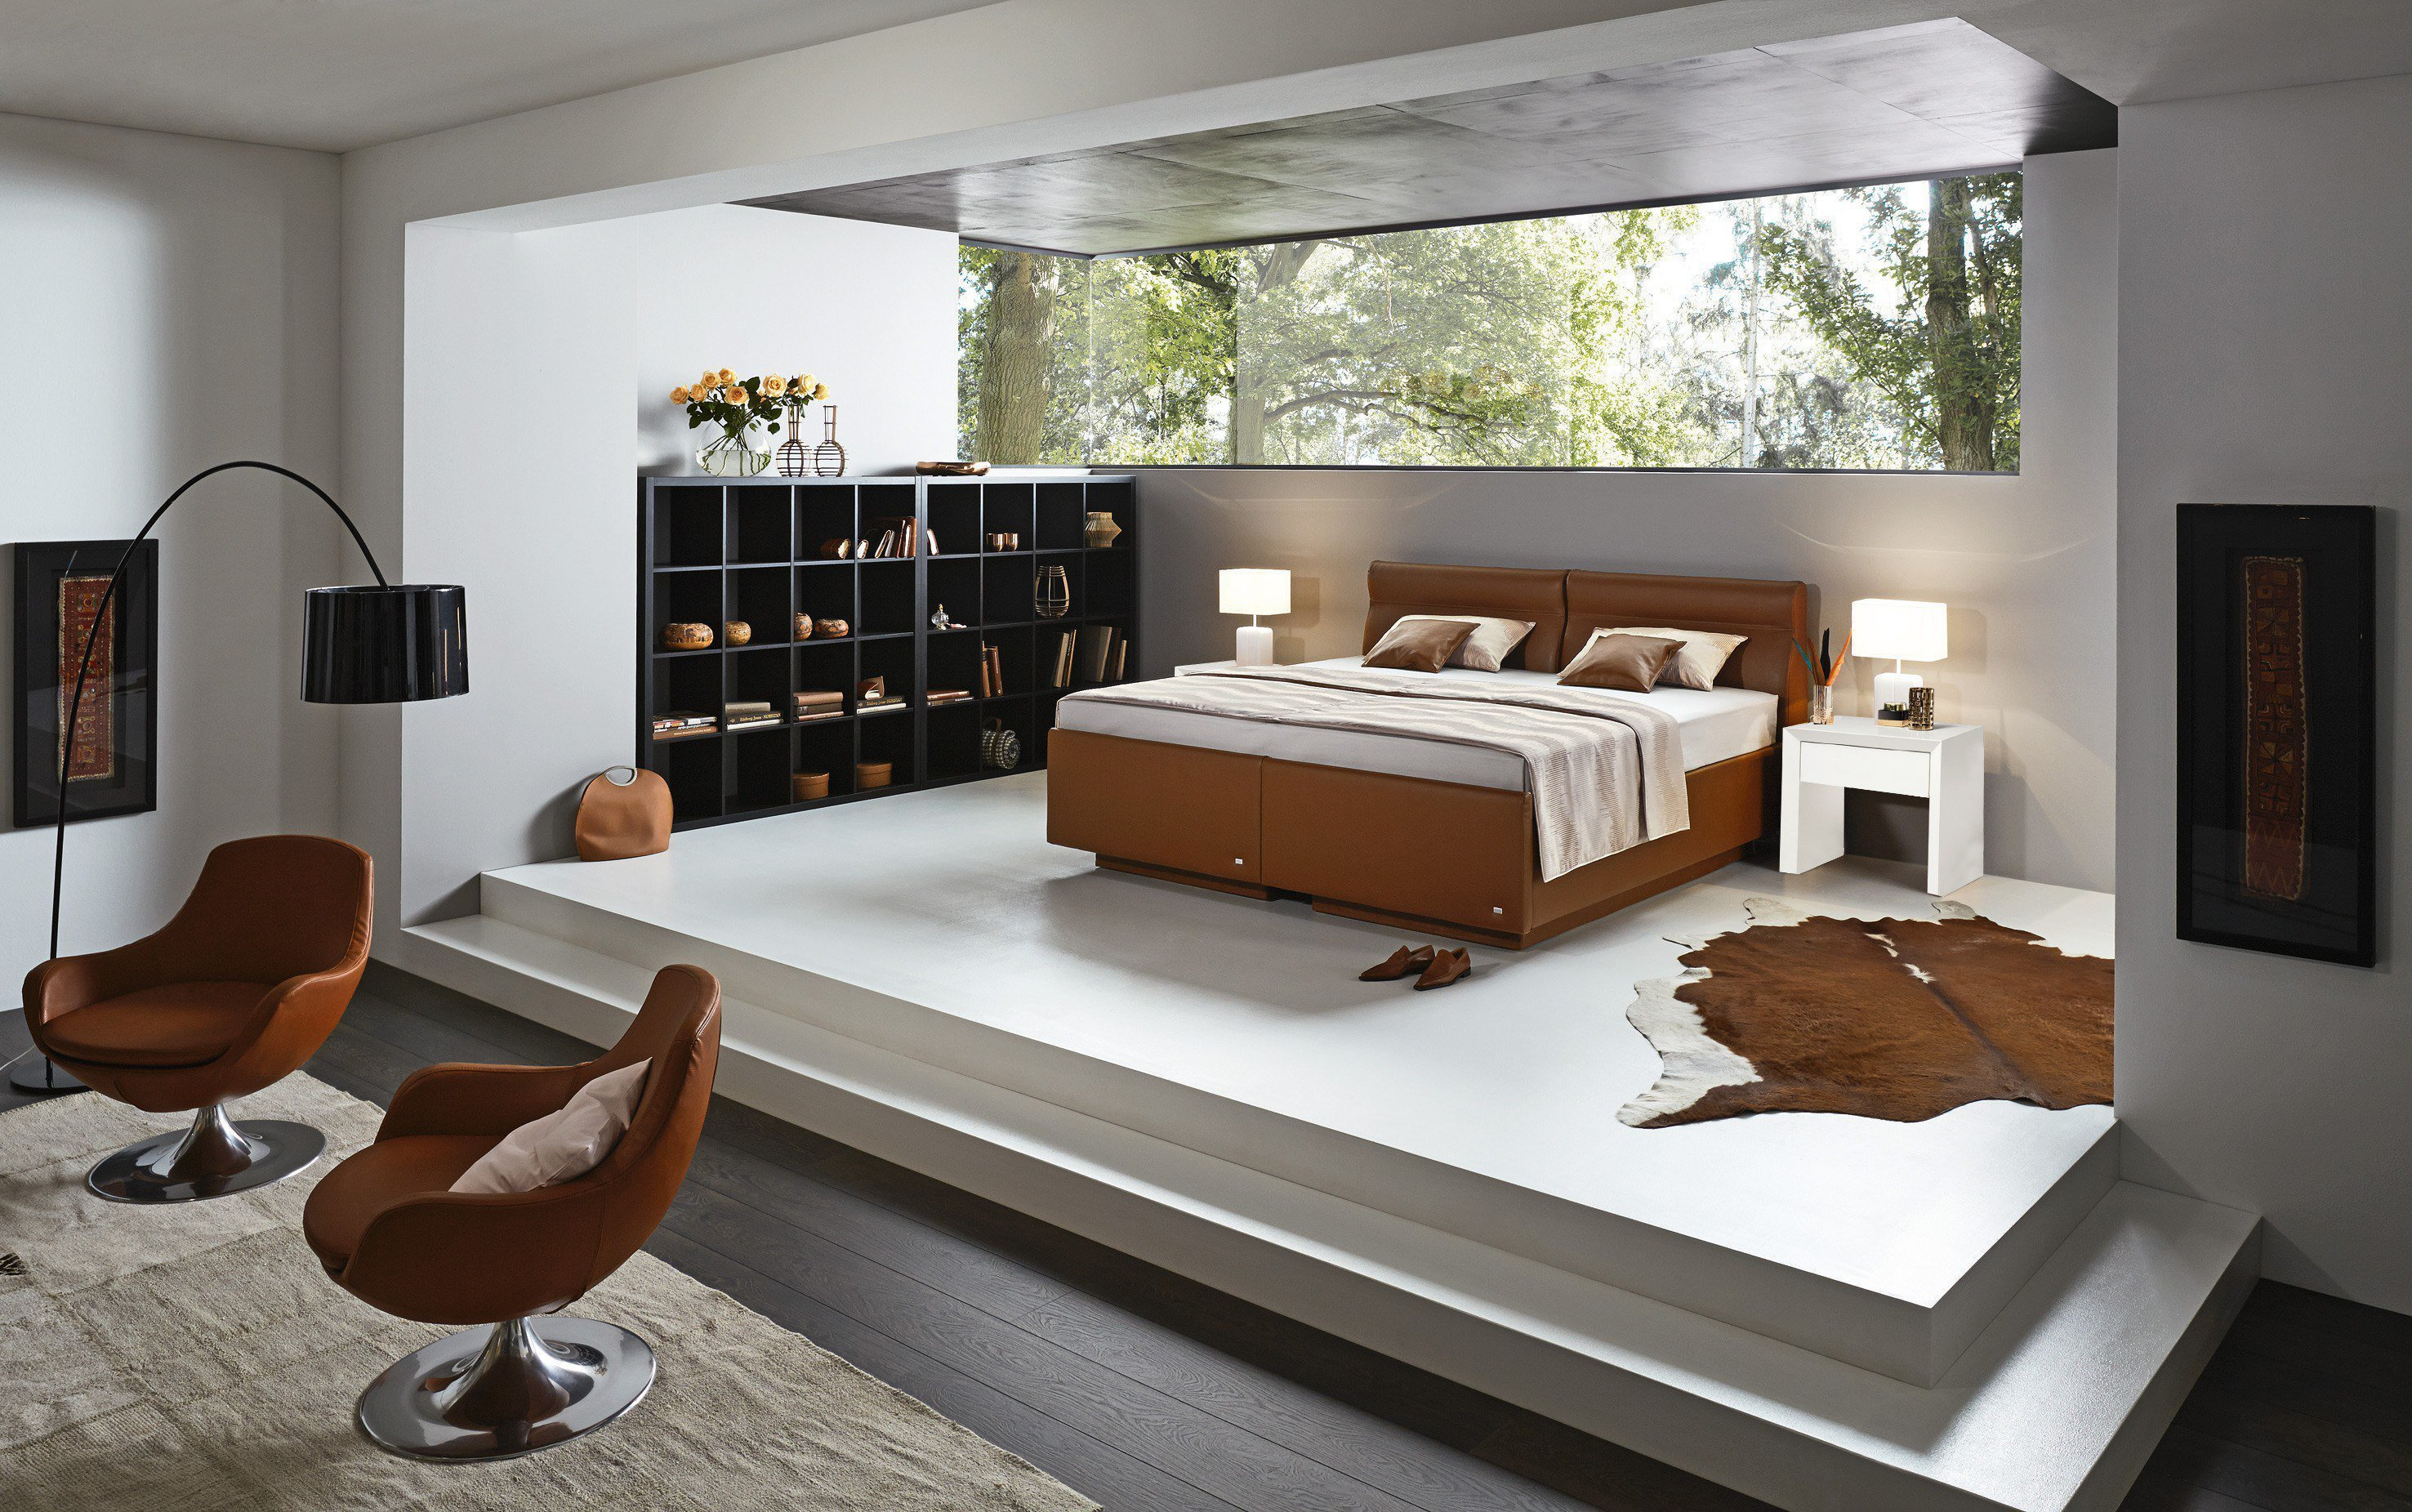 polsterbett von ruf modell uno due mit bettkasten m bel. Black Bedroom Furniture Sets. Home Design Ideas